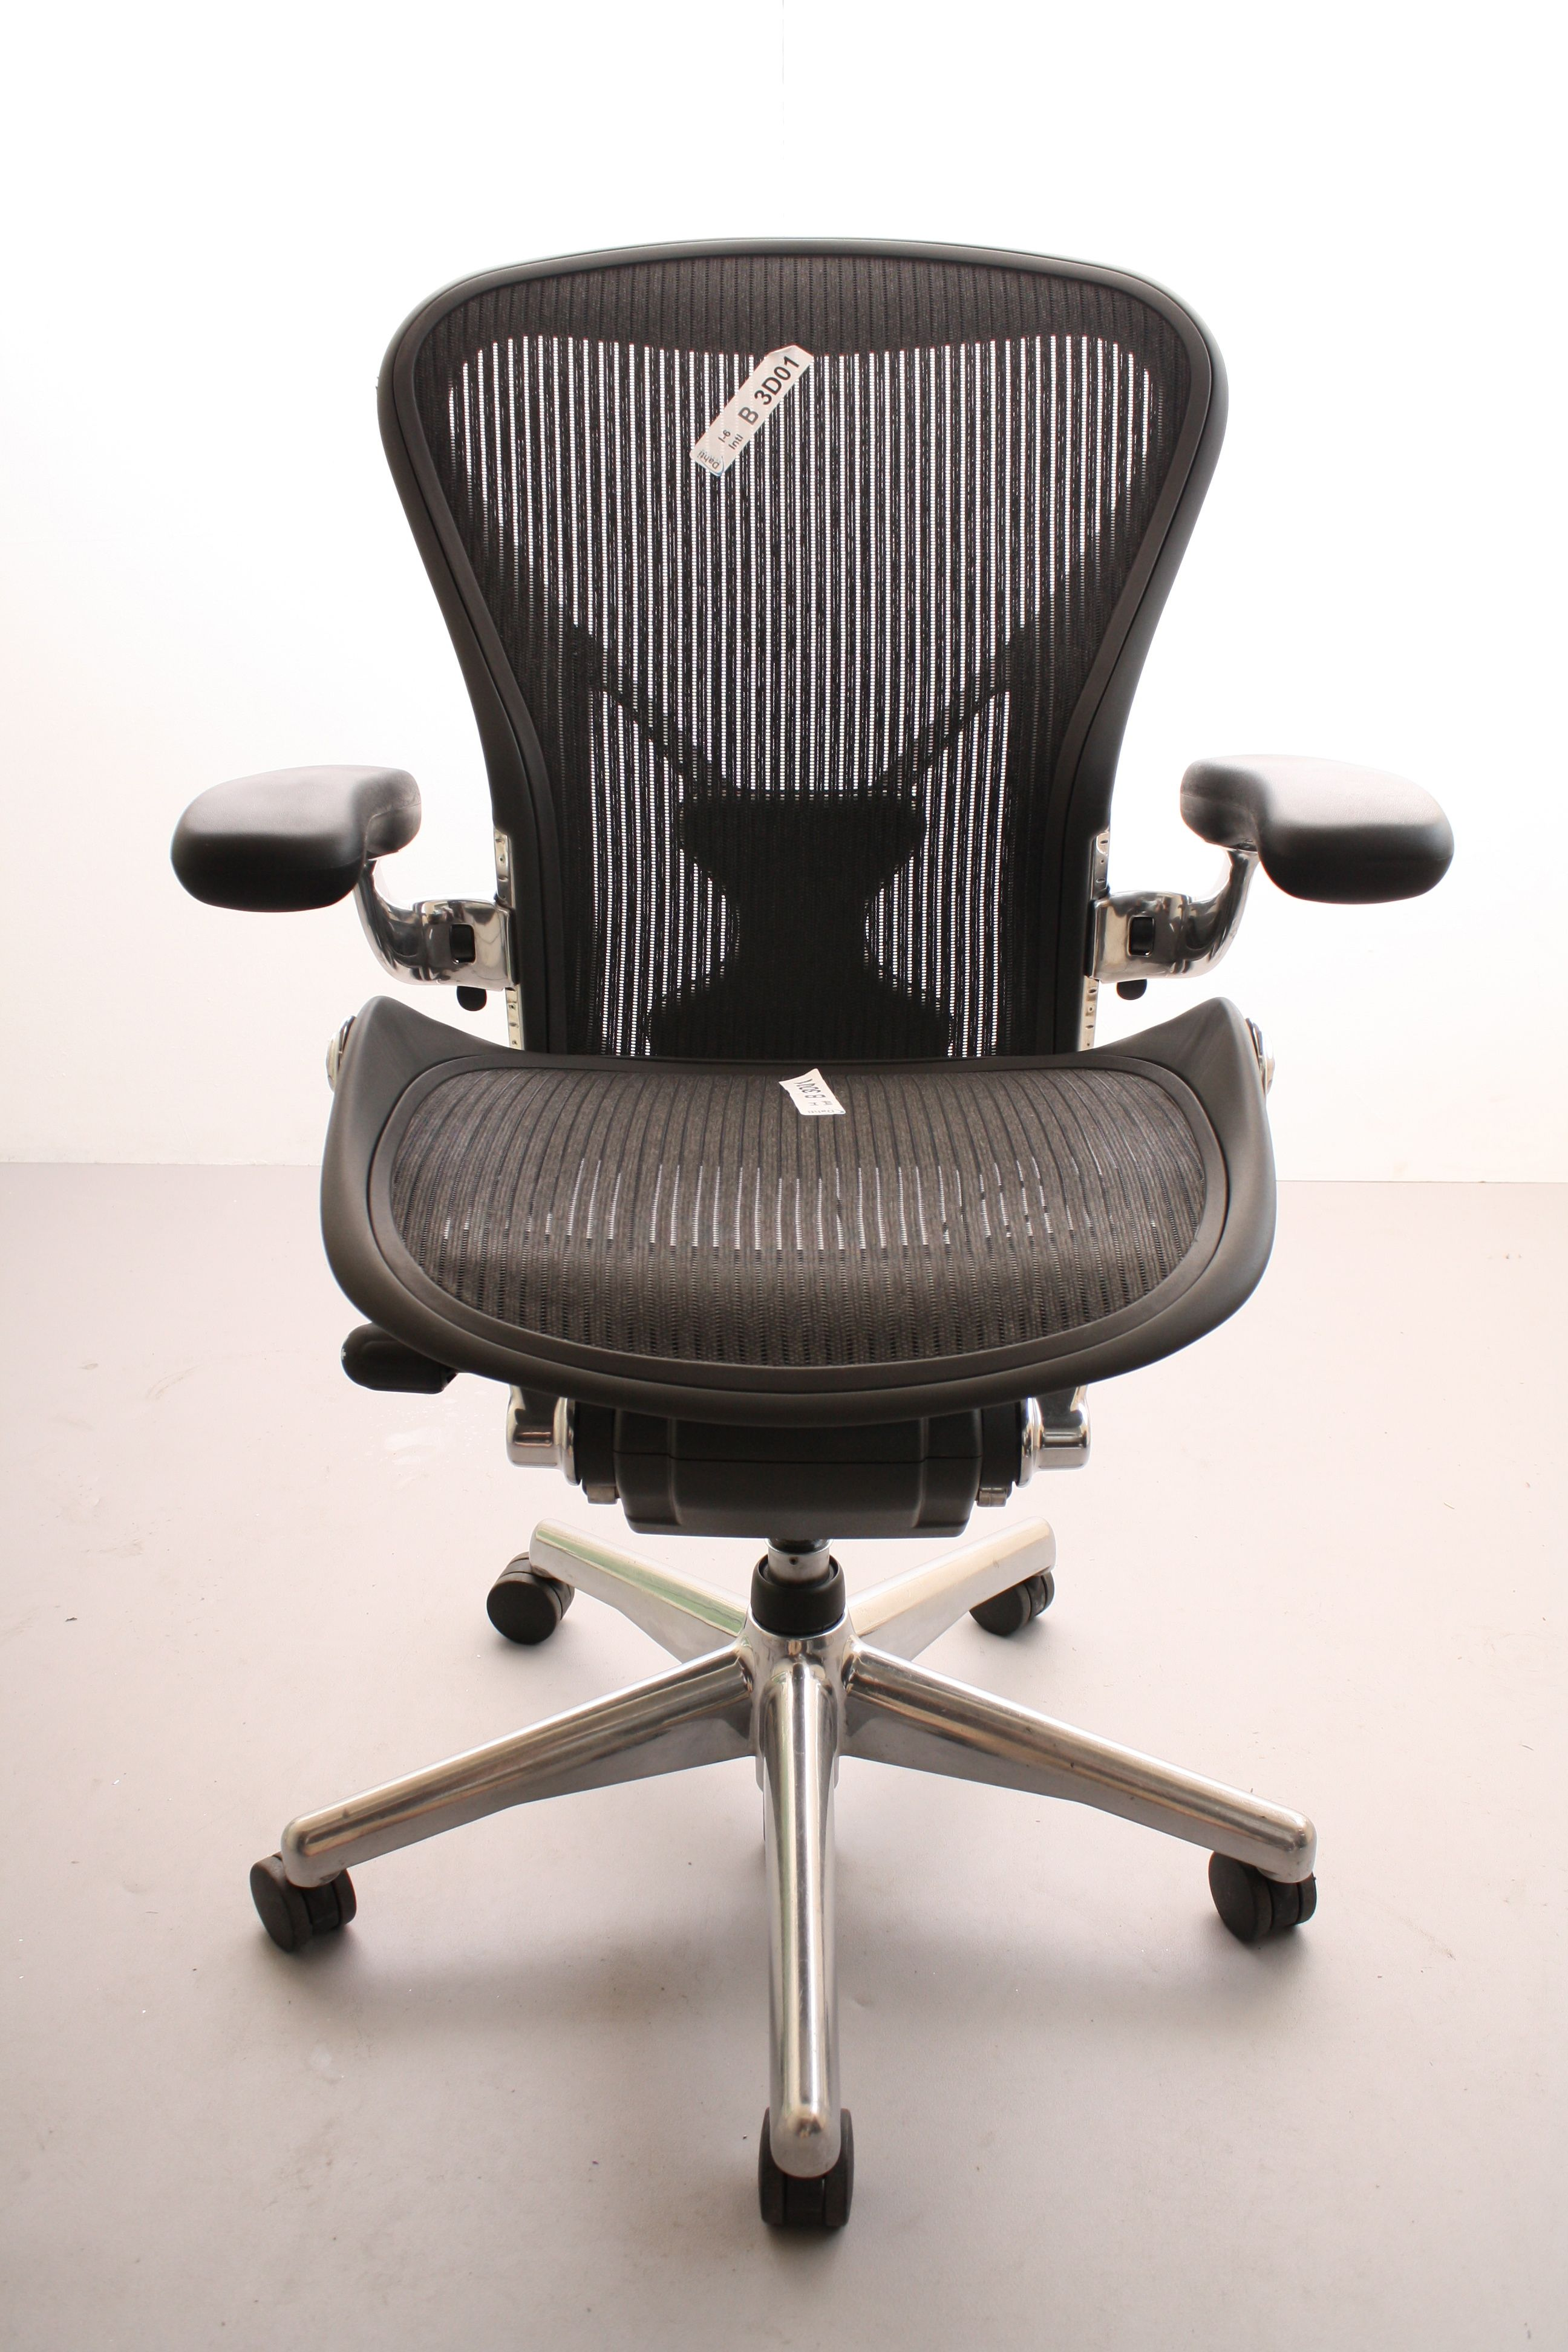 12 Types Of Chairs For Your Different Rooms Office Chair Chair